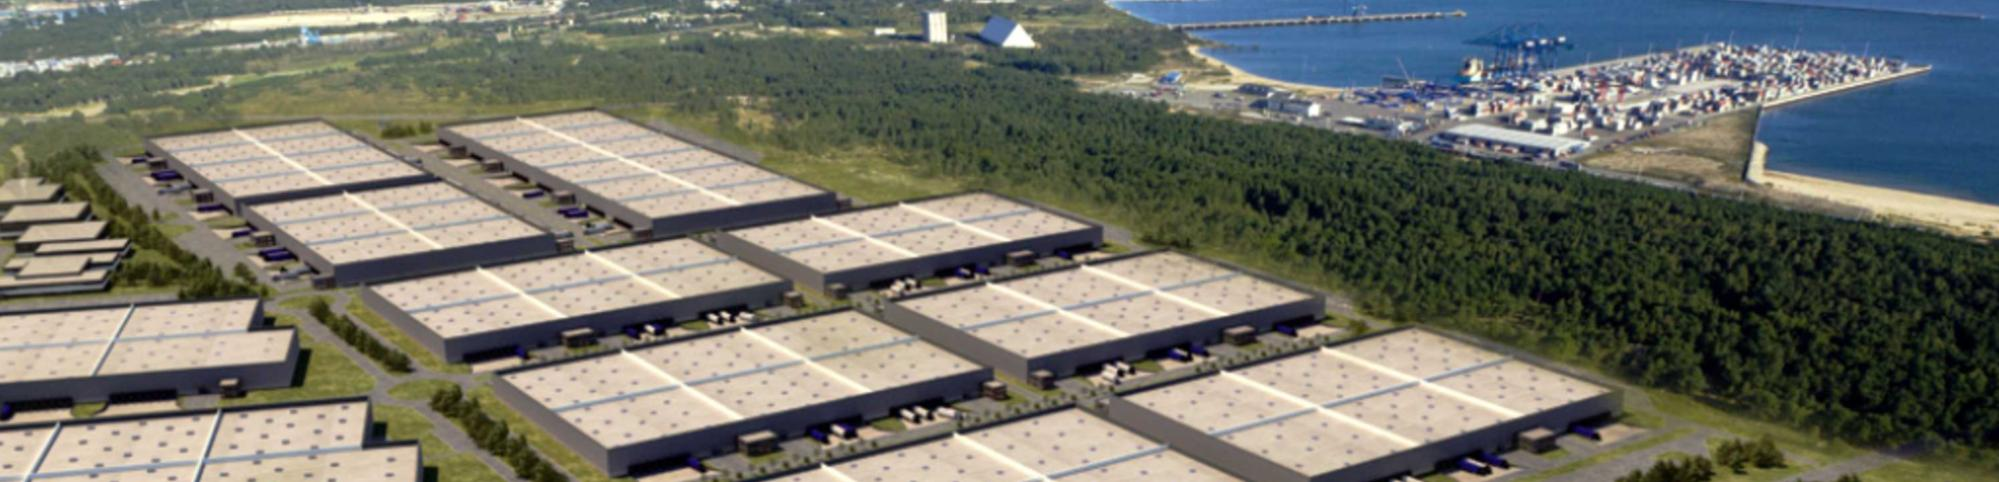 POMERANIAN LOGISTICS CENTER The rapidly expanding infrastructure of the Tri-City area (Gdańsk, Gdynia, Sopot) provides the Pomeranian Logistics Centre with excellent access to national and